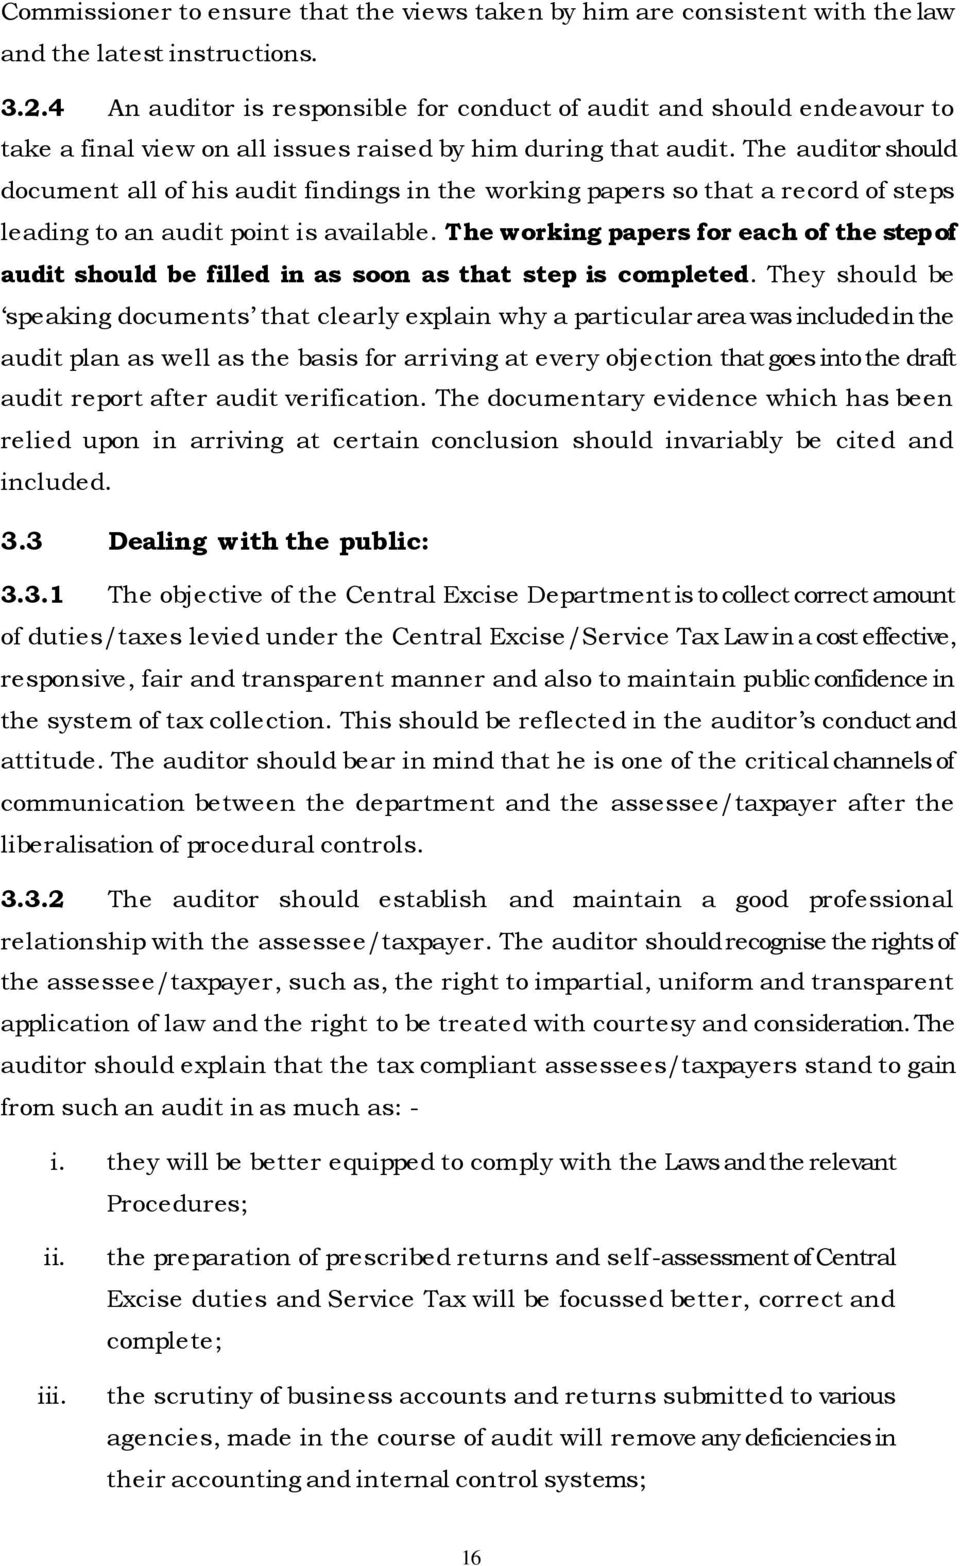 The auditor should document all of his audit findings in the working papers  so that a